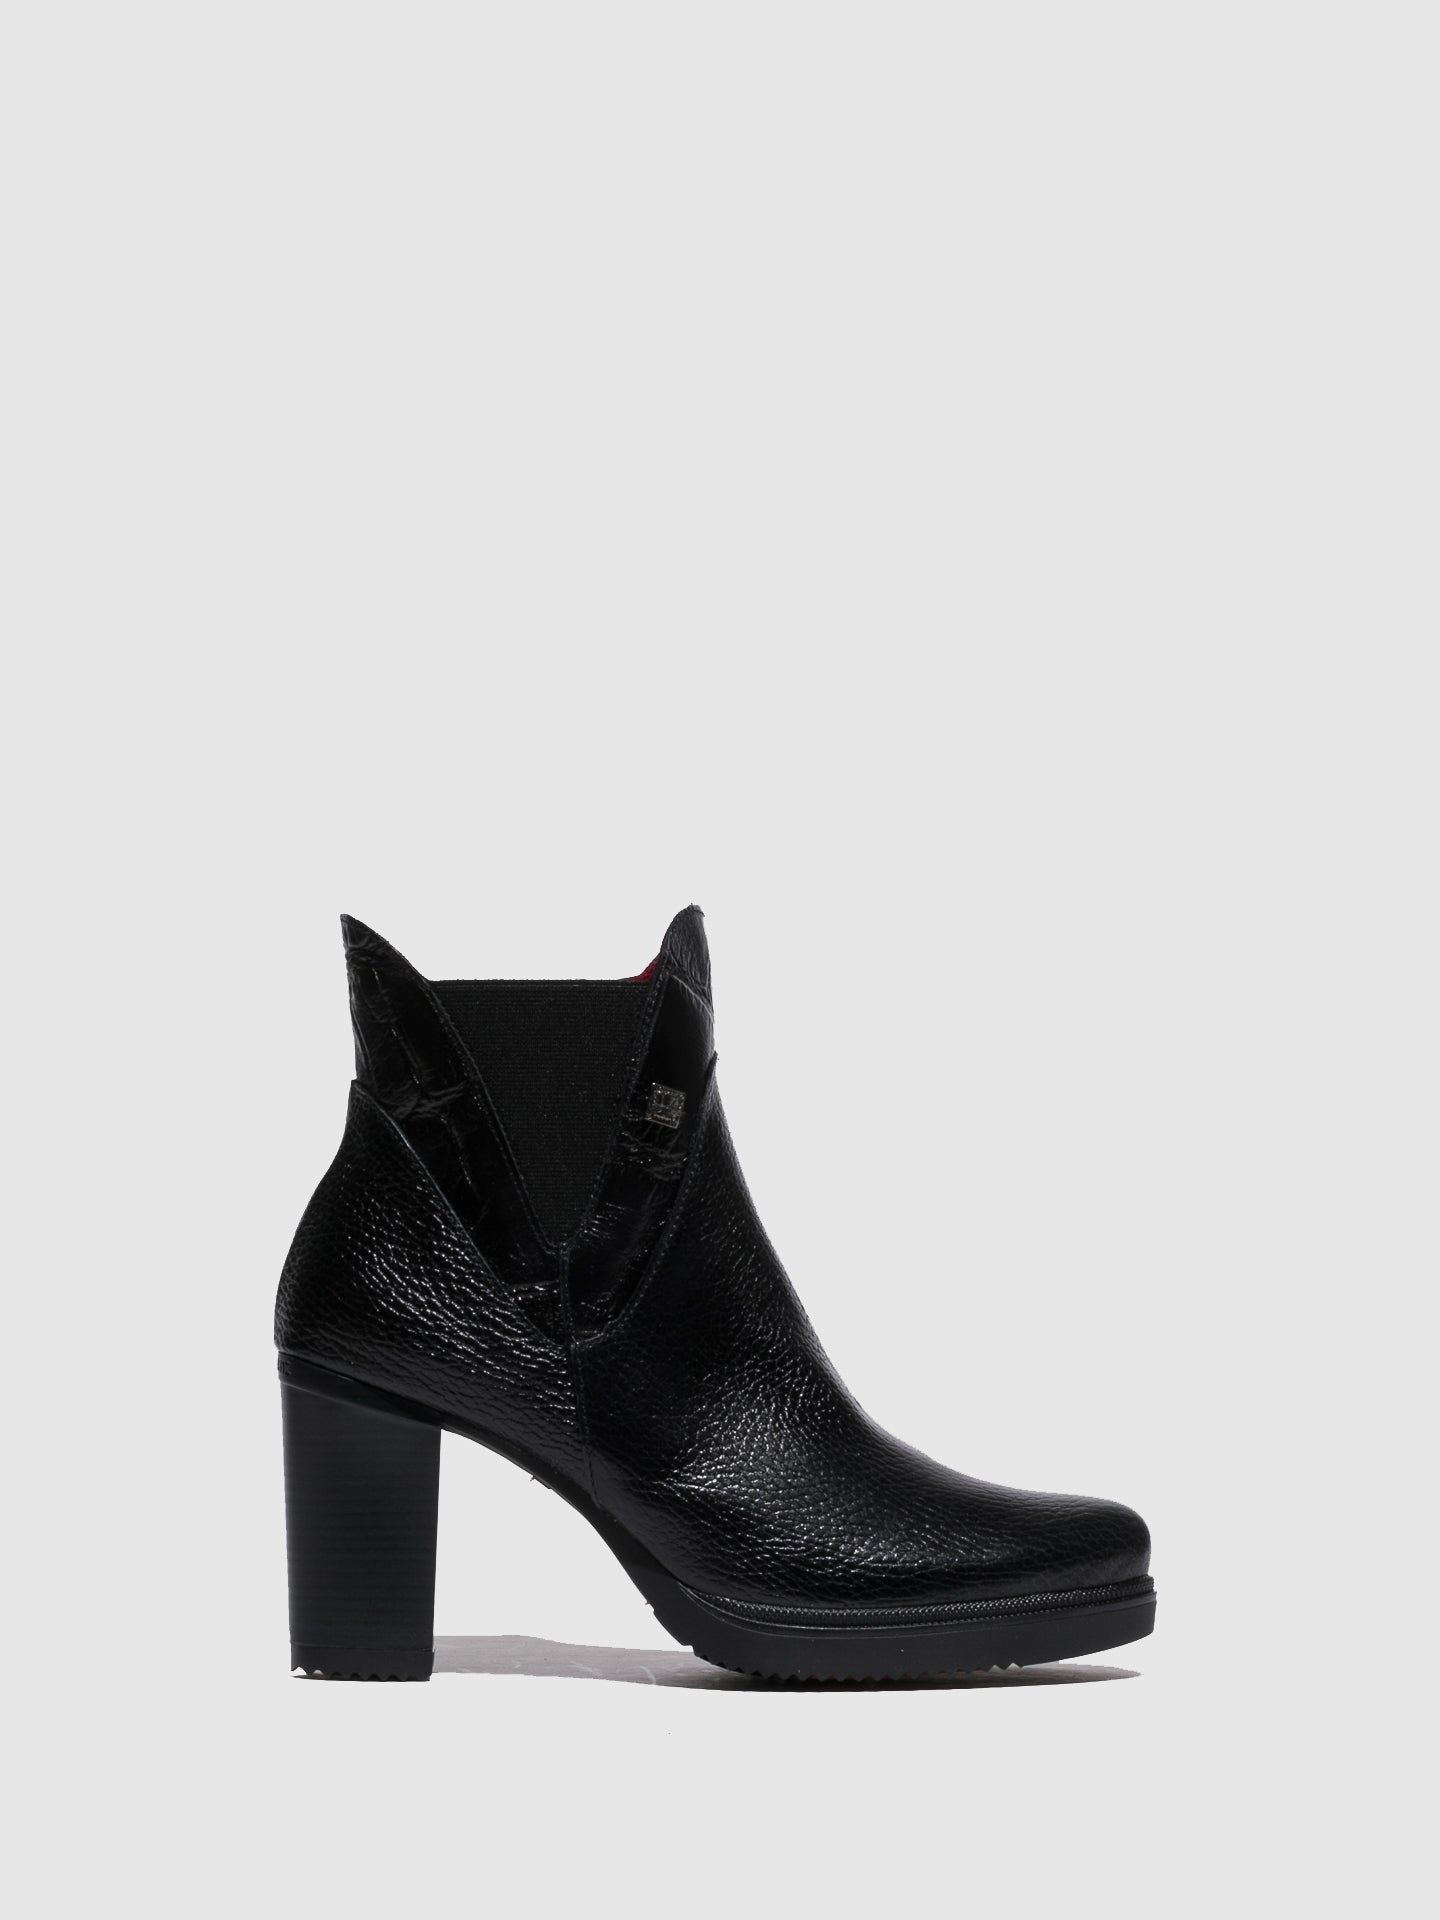 Jose Saenz Black Zip-up Ankle Boots